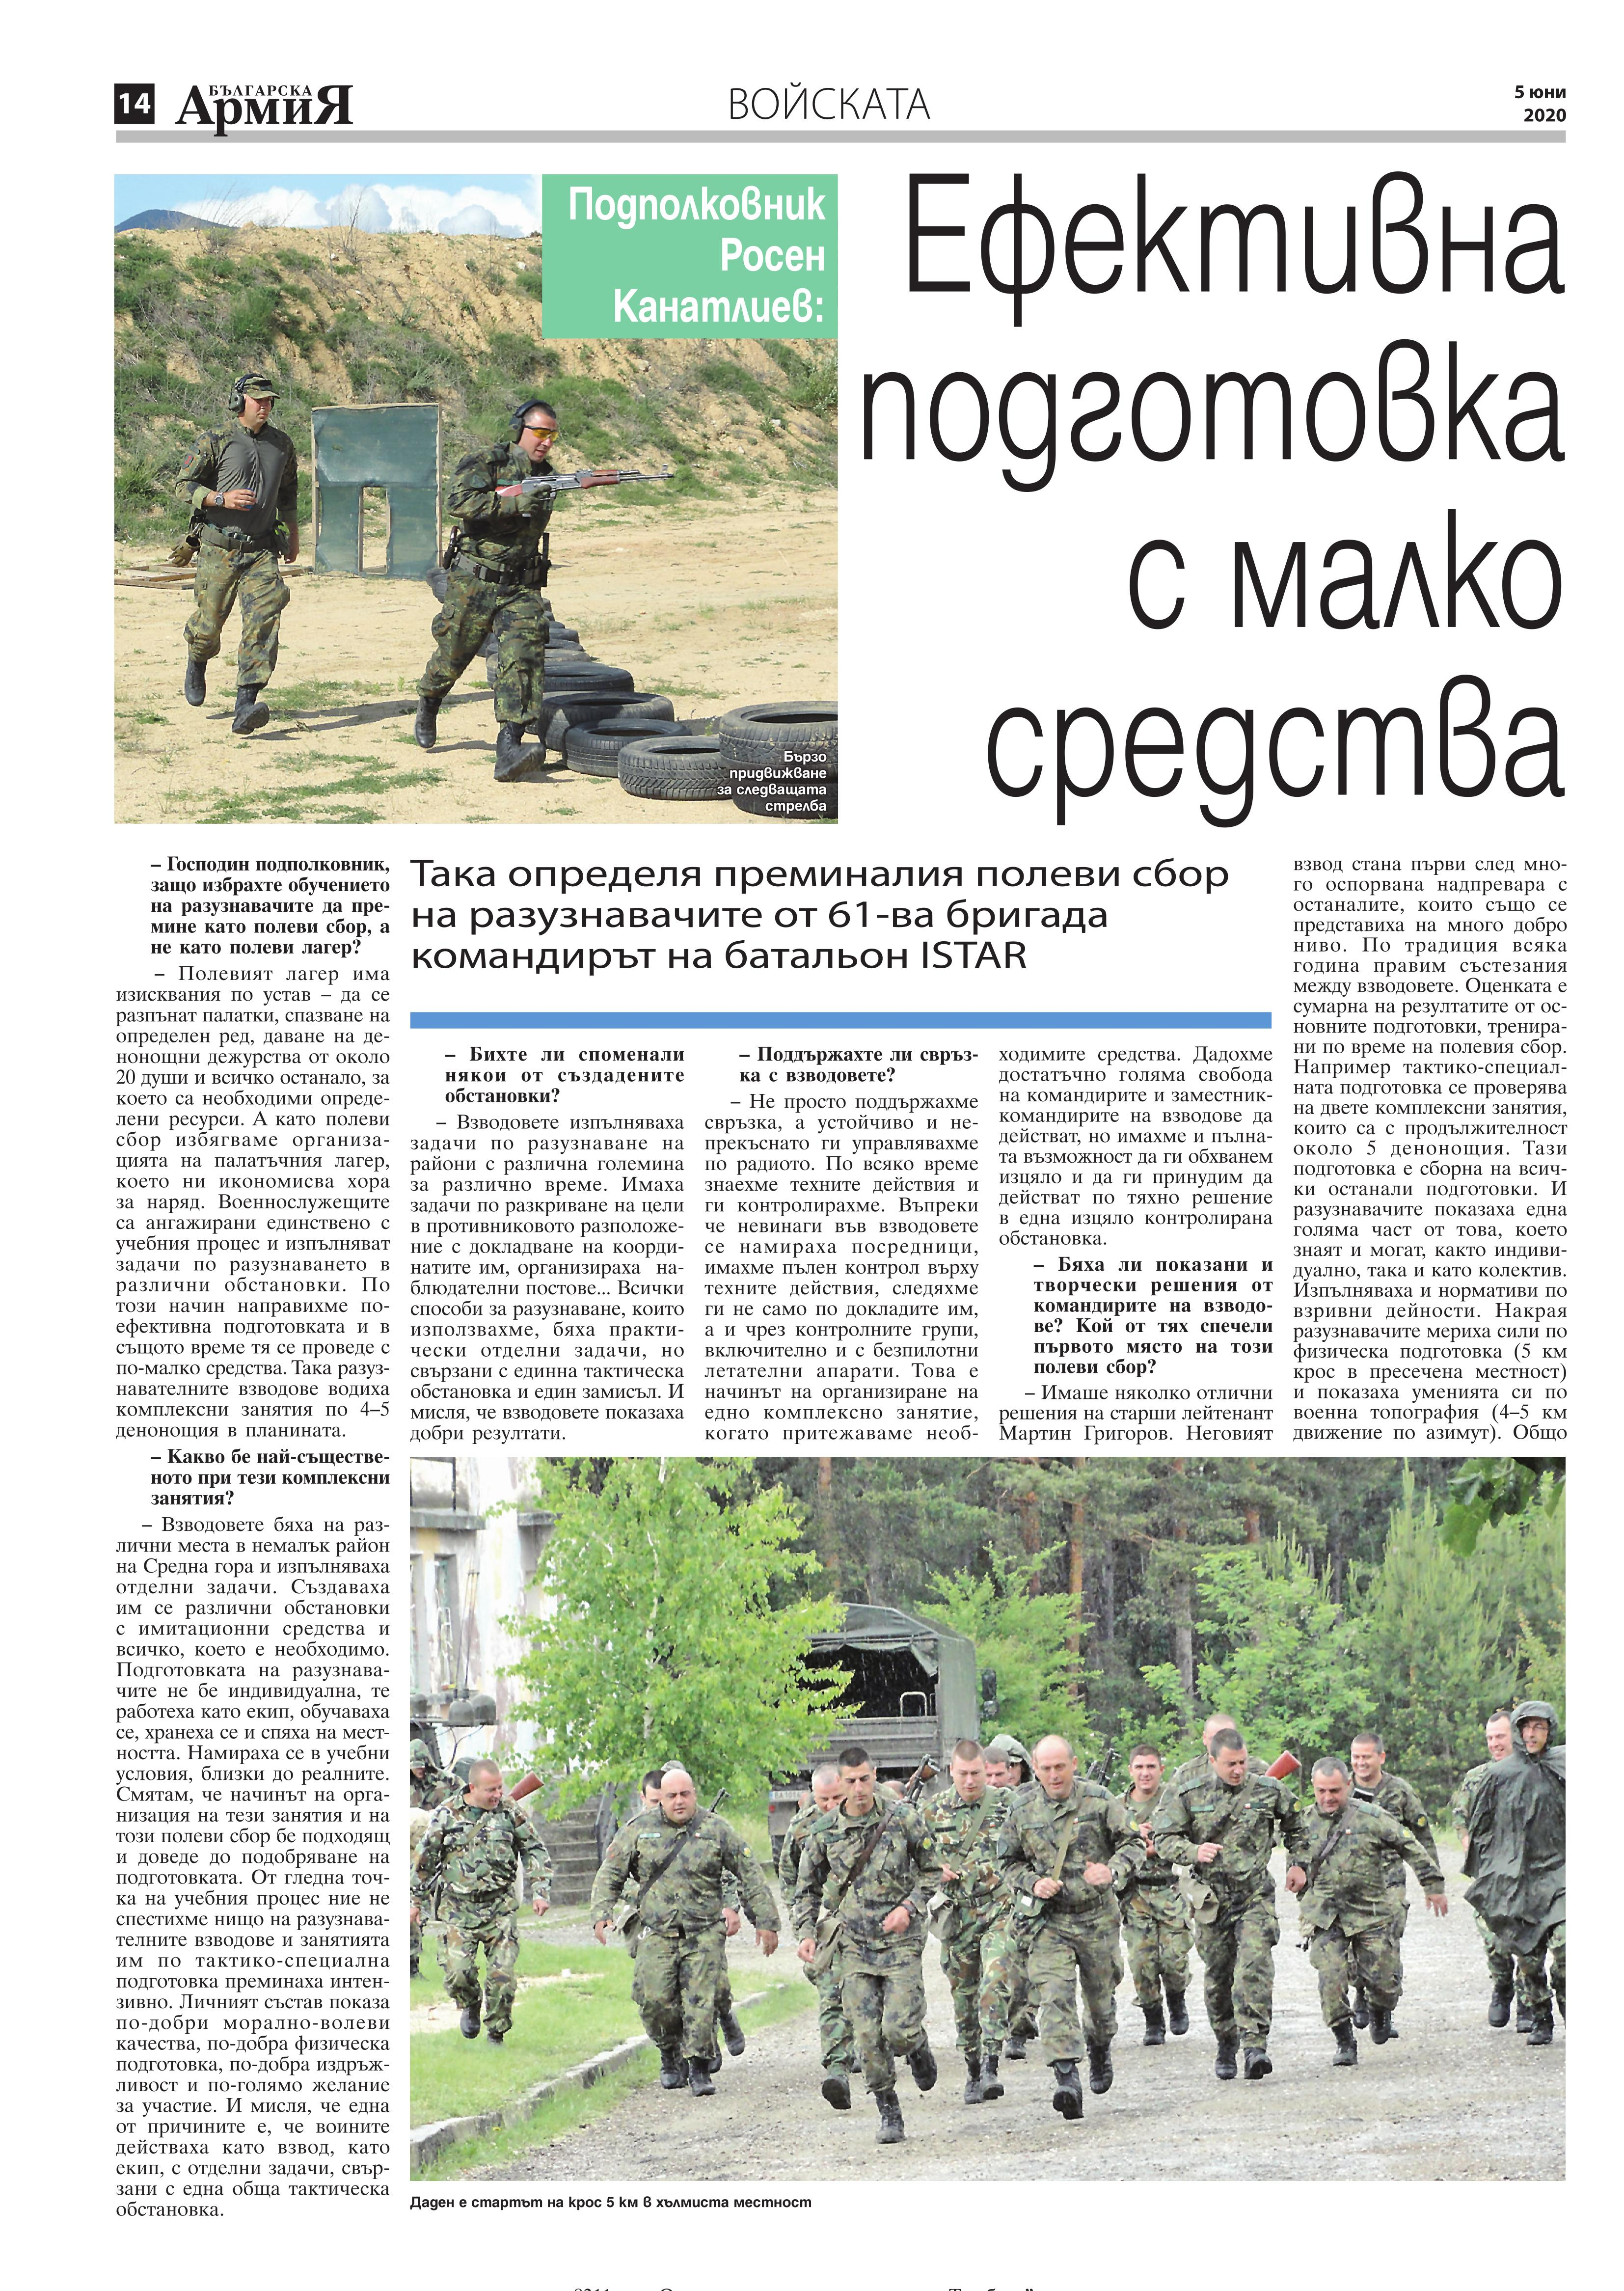 https://www.armymedia.bg/wp-content/uploads/2015/06/14.page1_-142.jpg